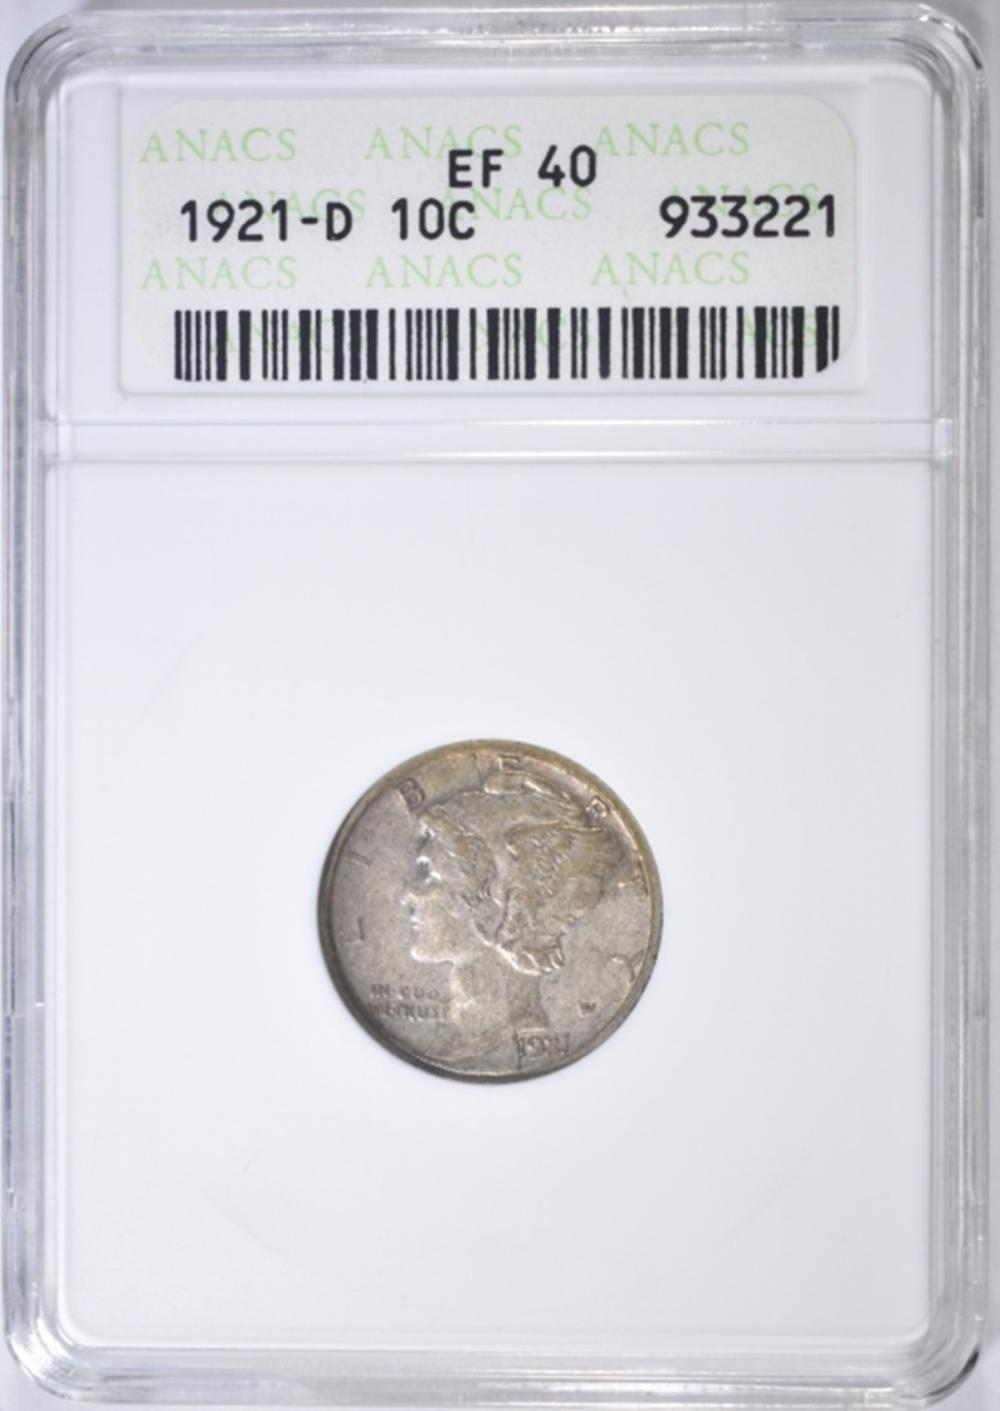 Lot 97: 1921-D MERCURY DIME ANACS EF-40